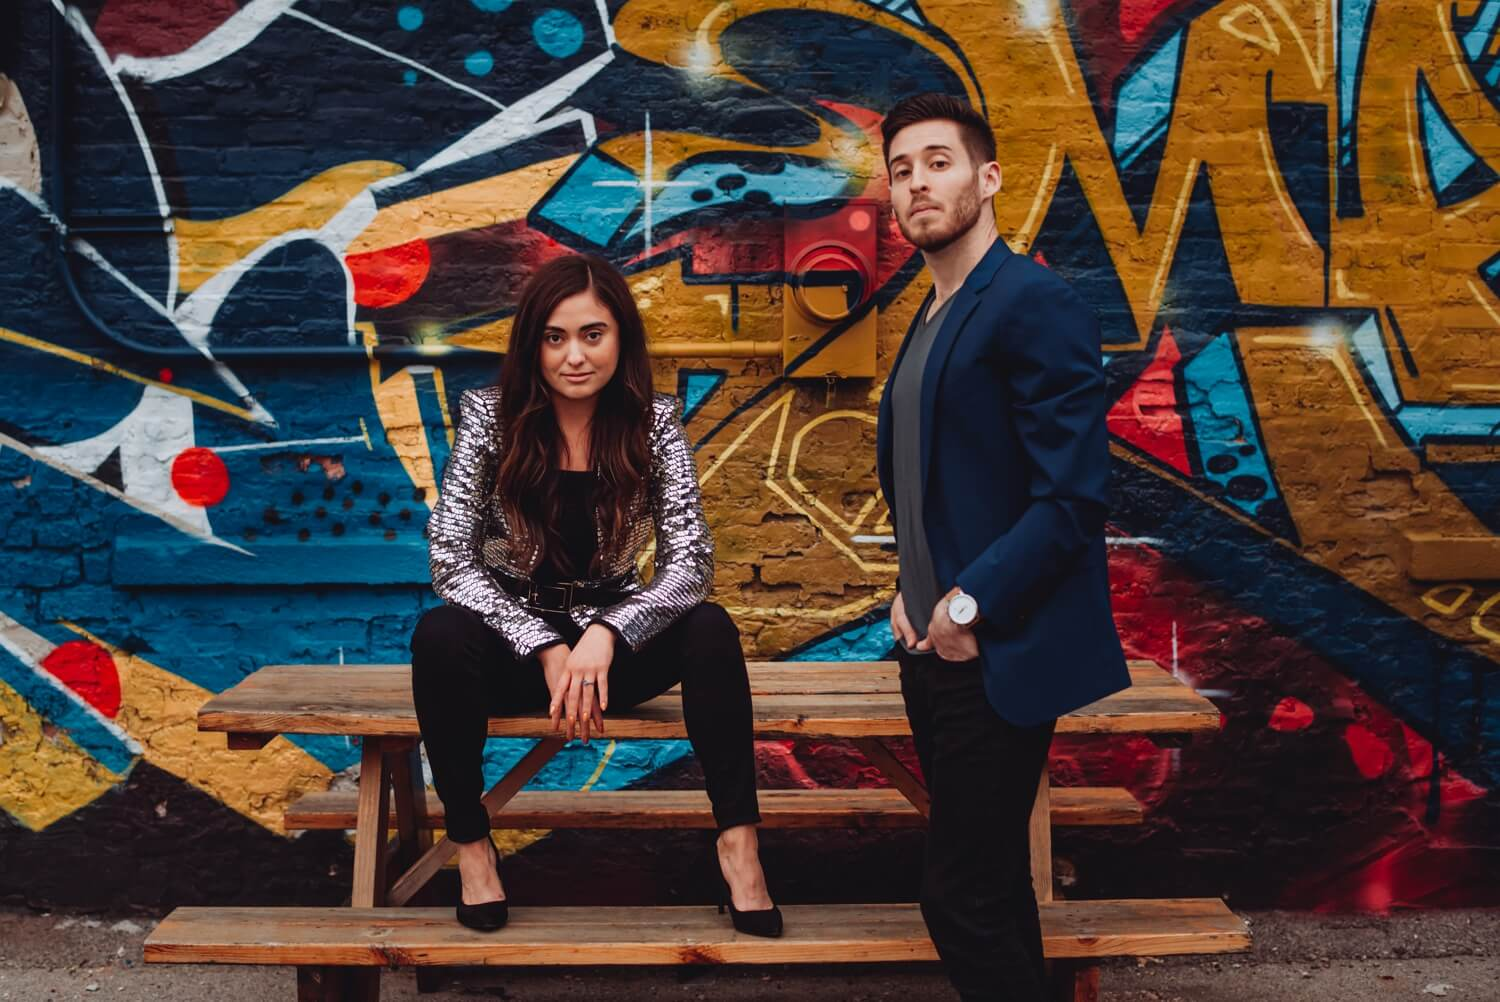 Wicker Park Engagement Photographer - The Adamkovi, epic portrait